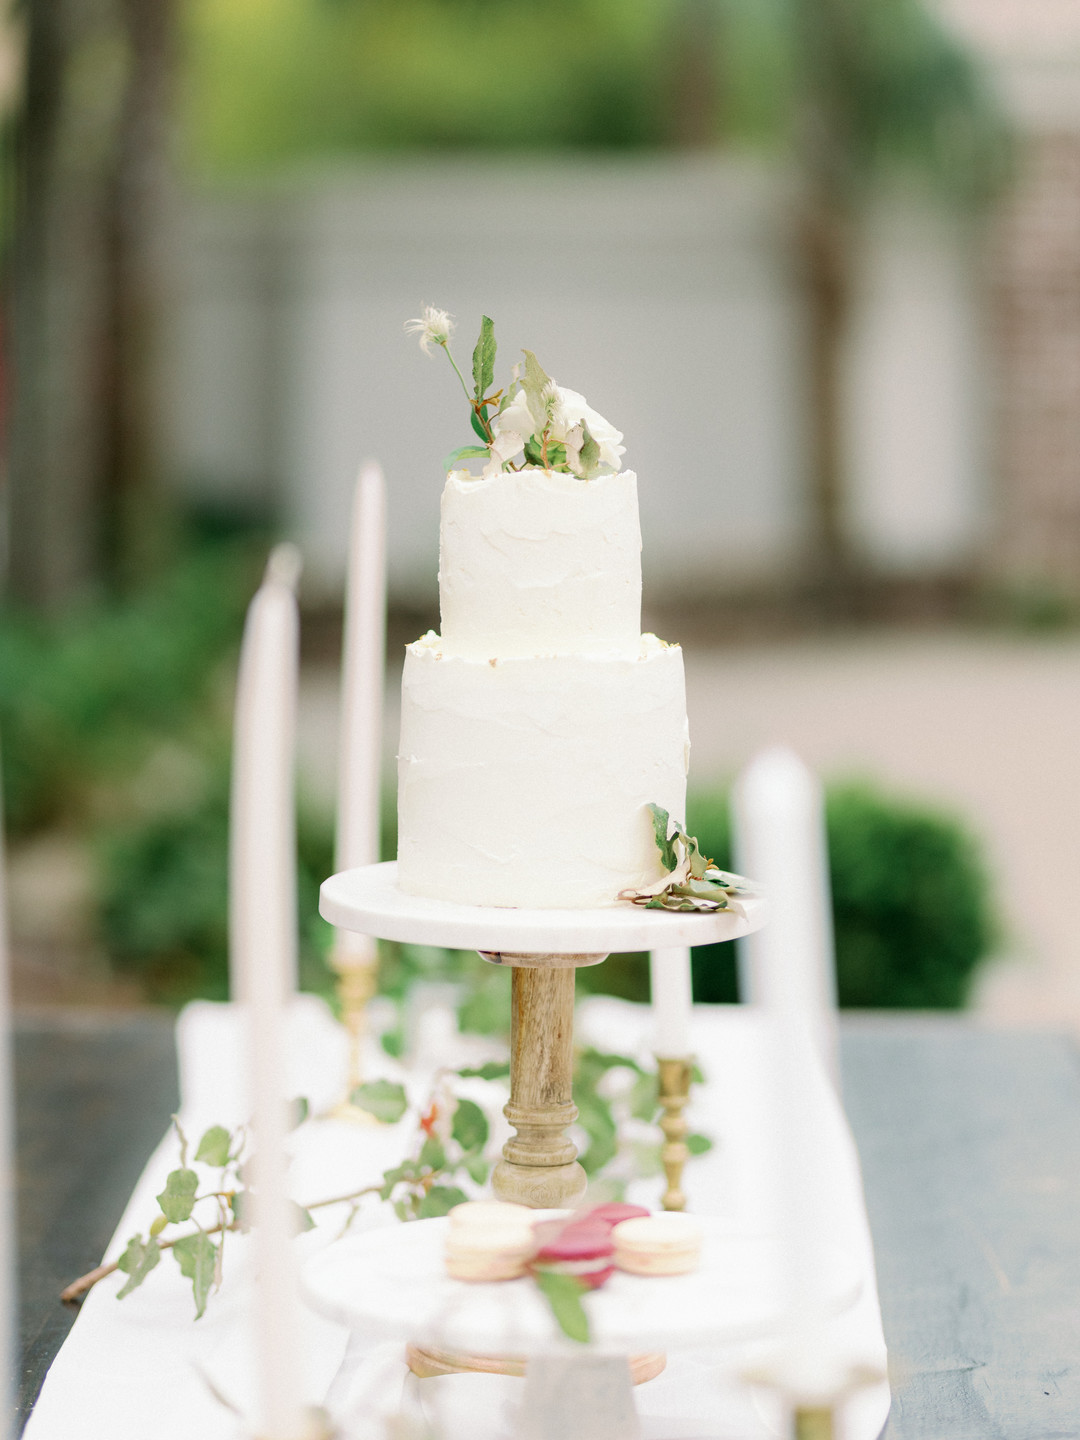 simple white wedding cake with greenery